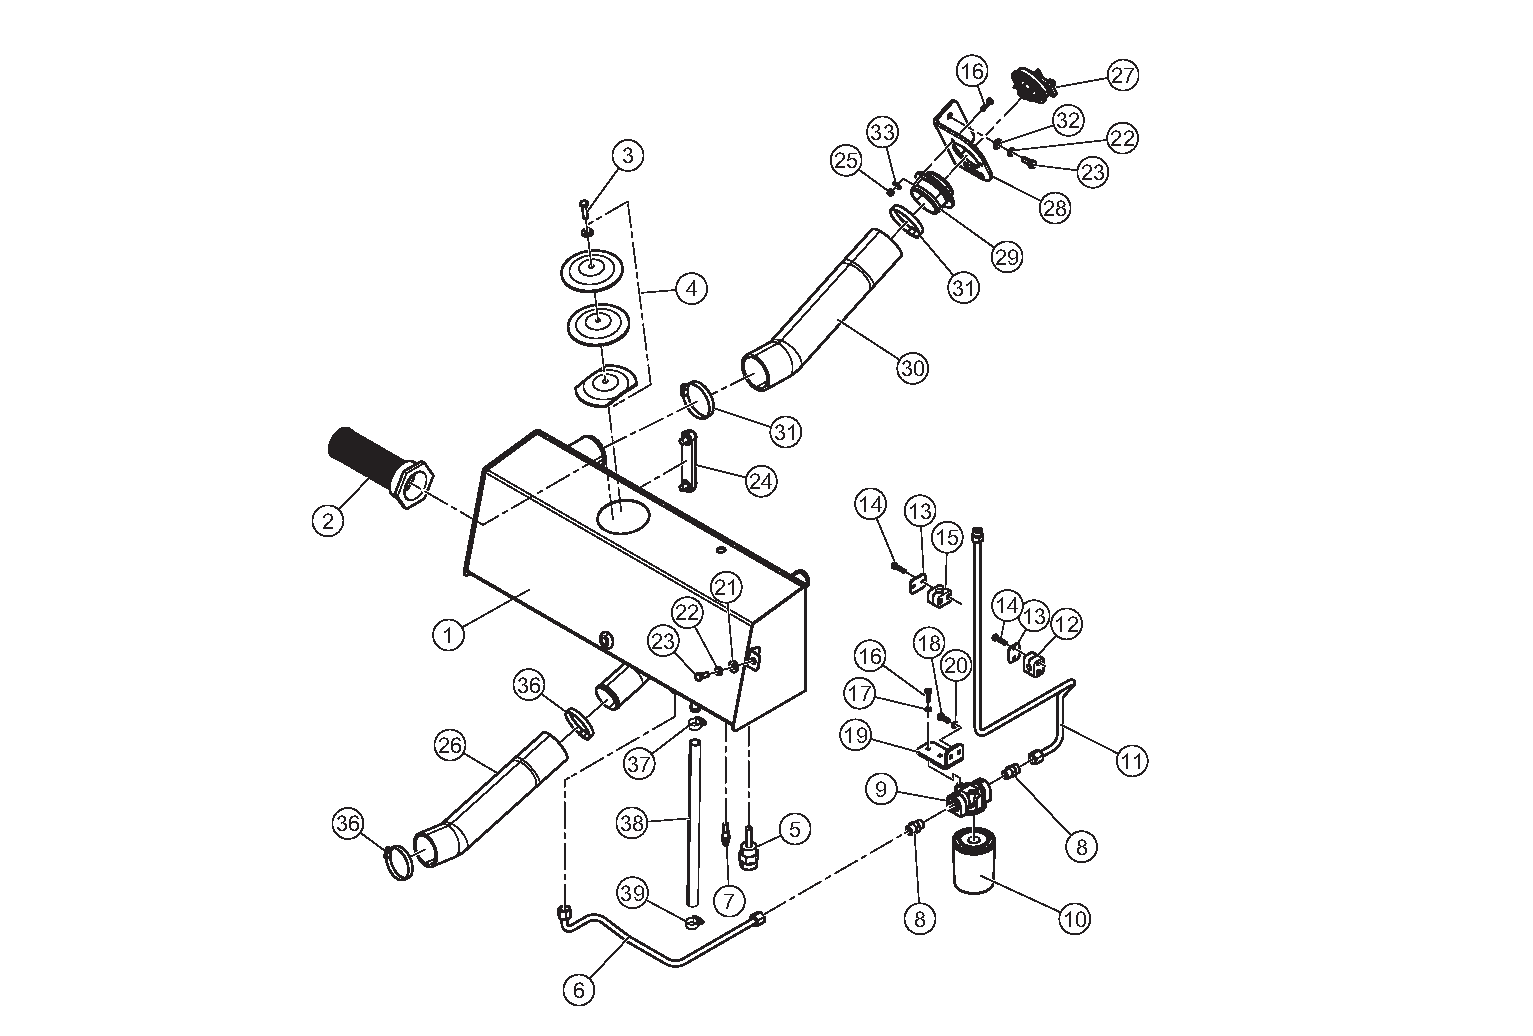 Diagram 12-A Hydraulic Resevoir Assembly